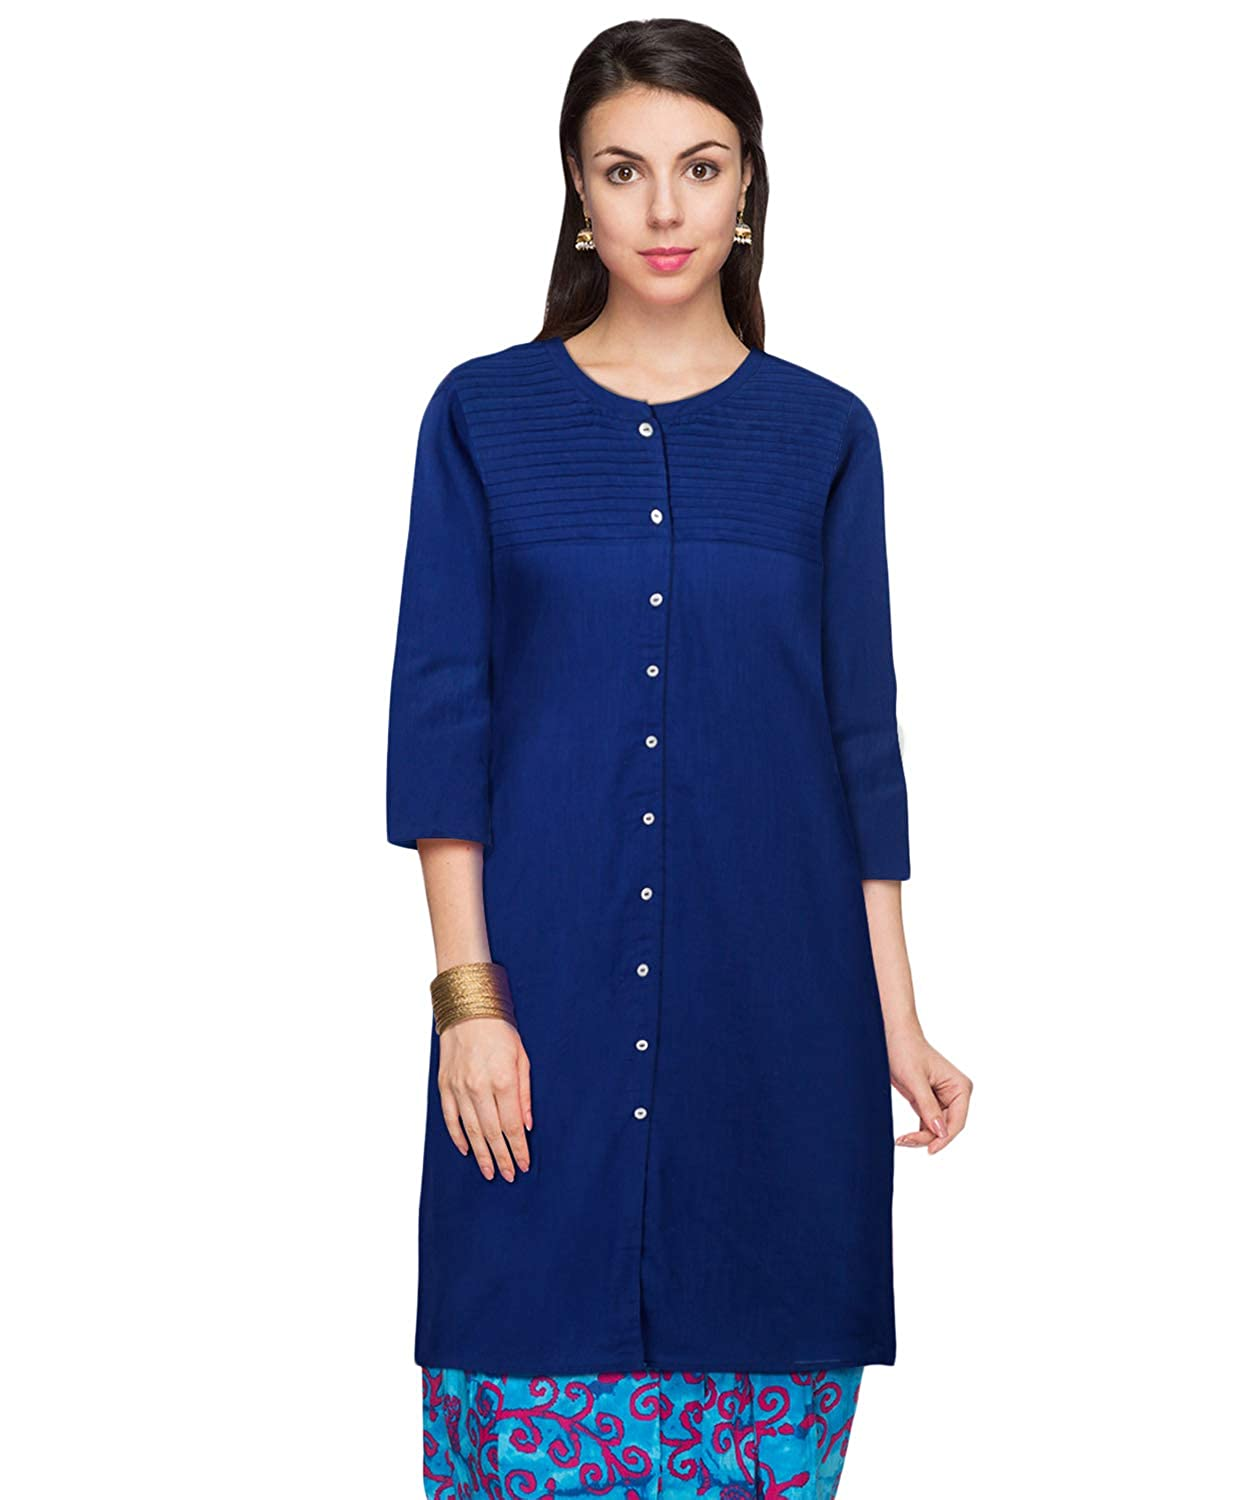 SRISHTI by FBB Women's Cotton a-line Kurta